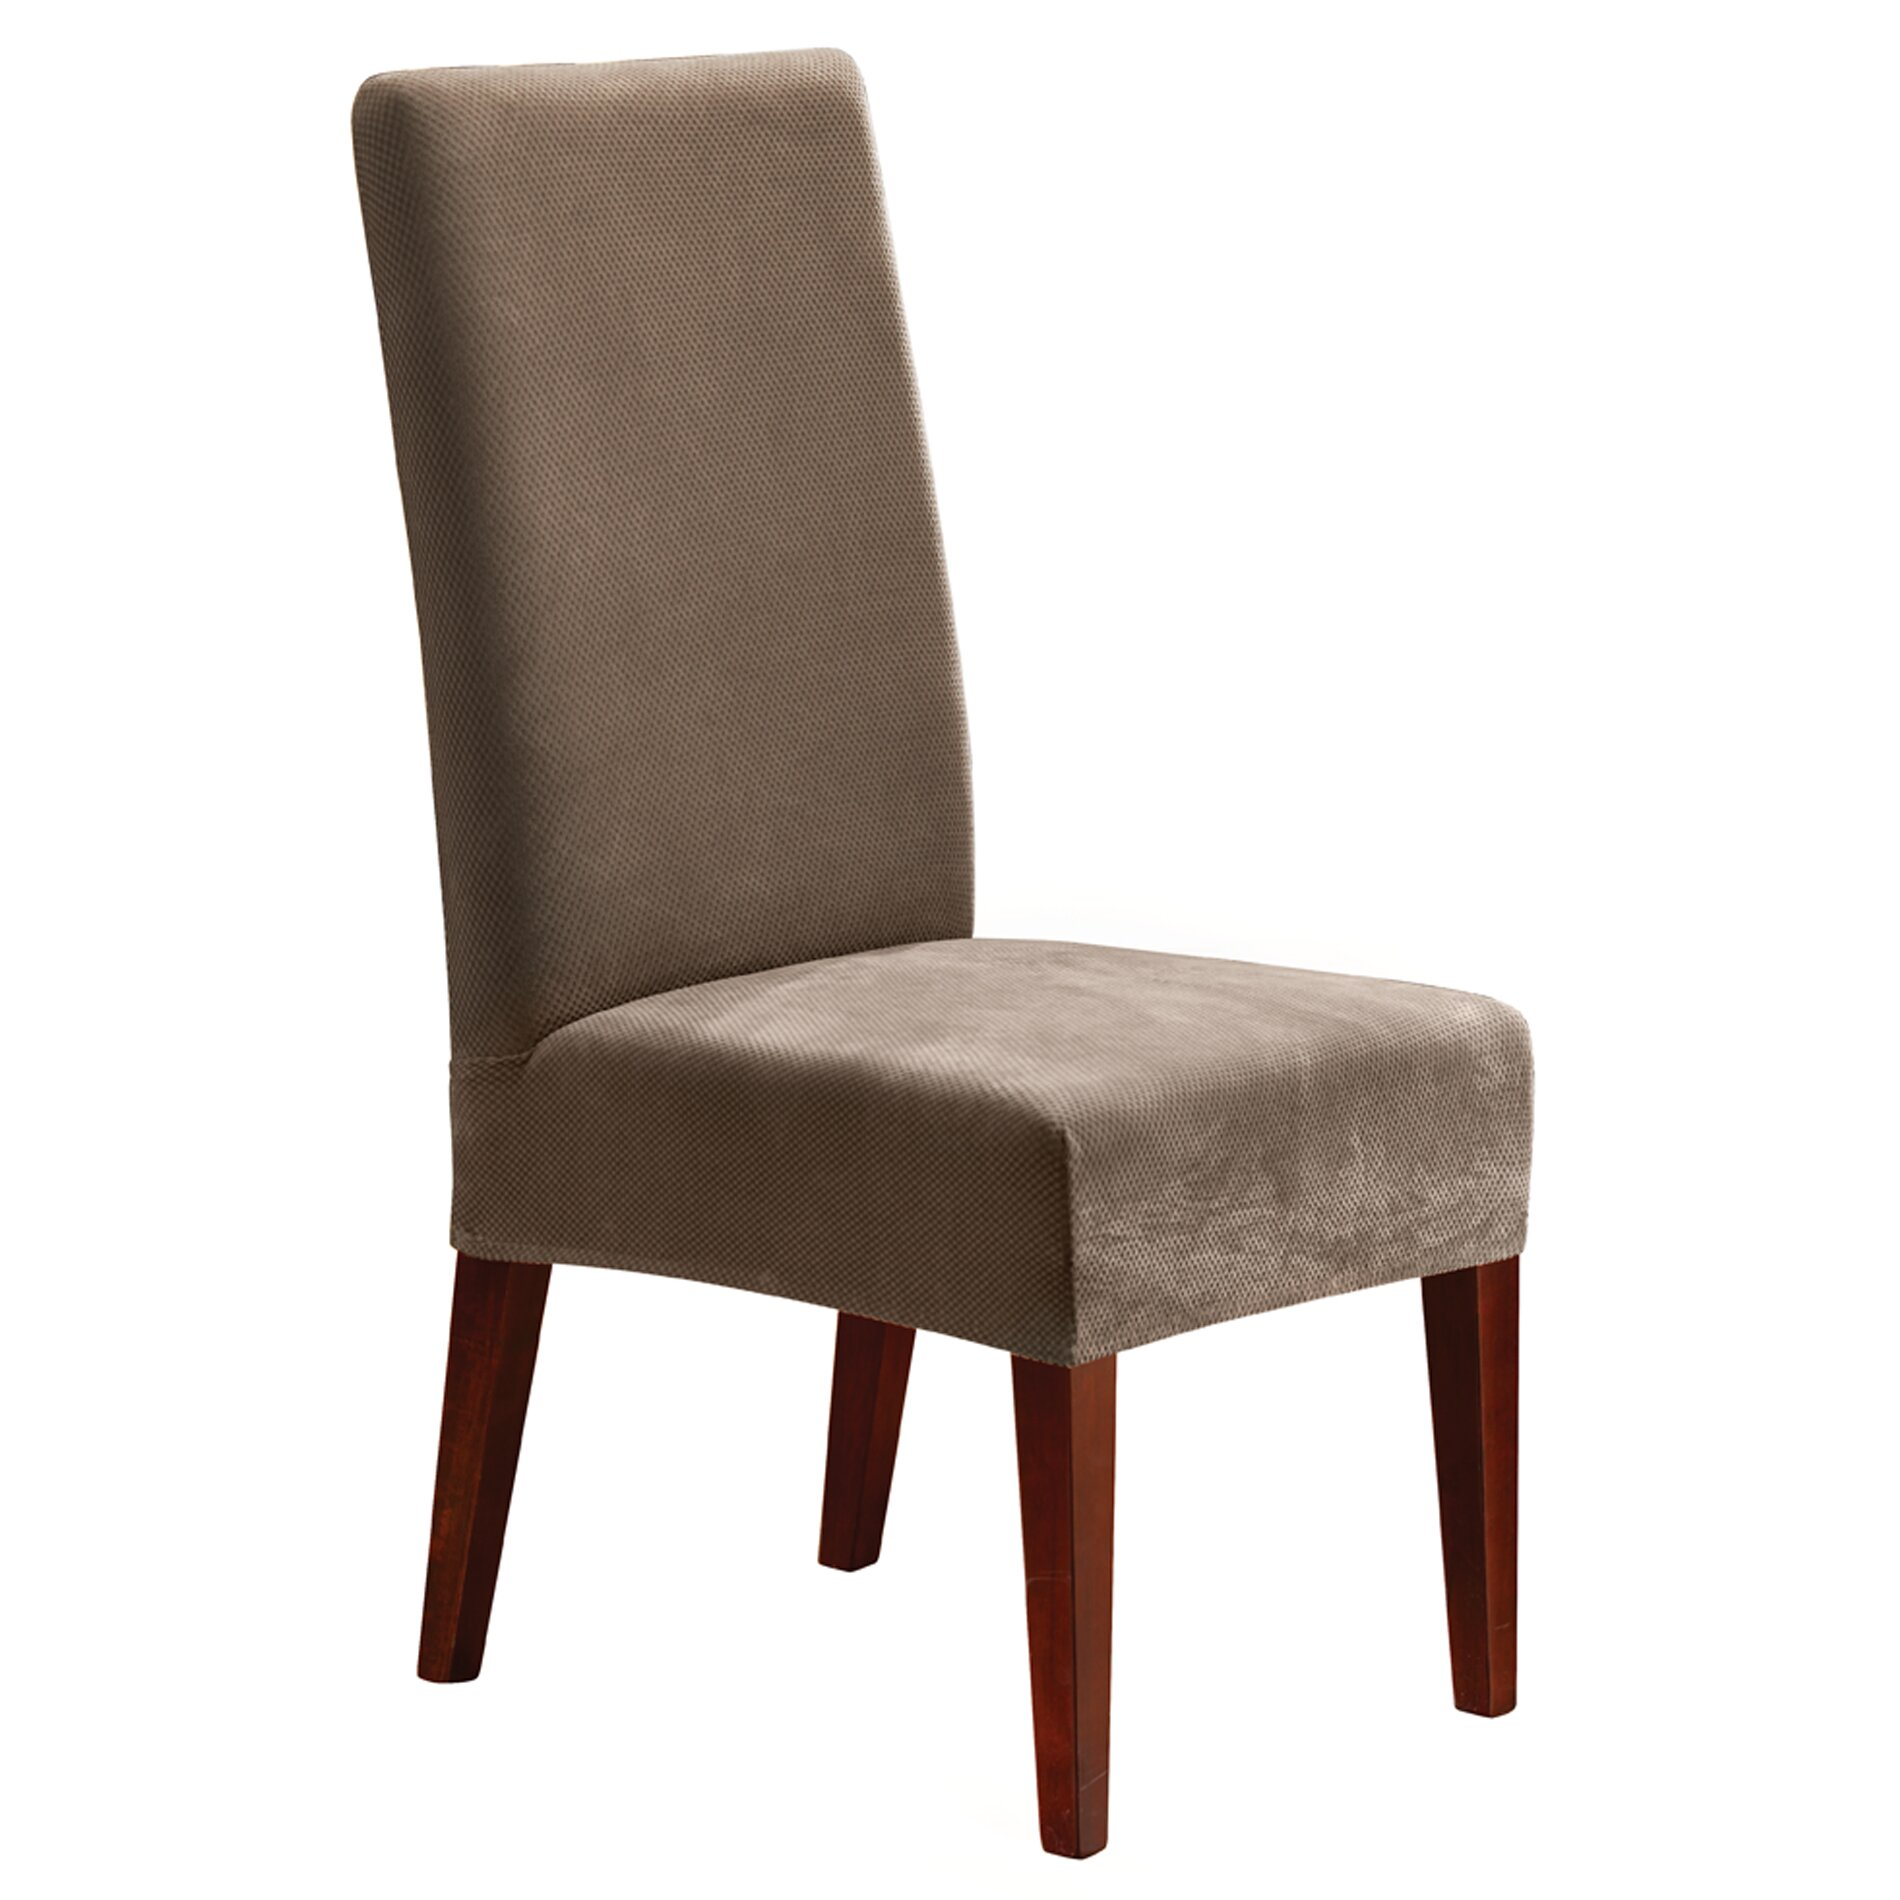 19 [ Wayfair Dining Room Chair Covers ]